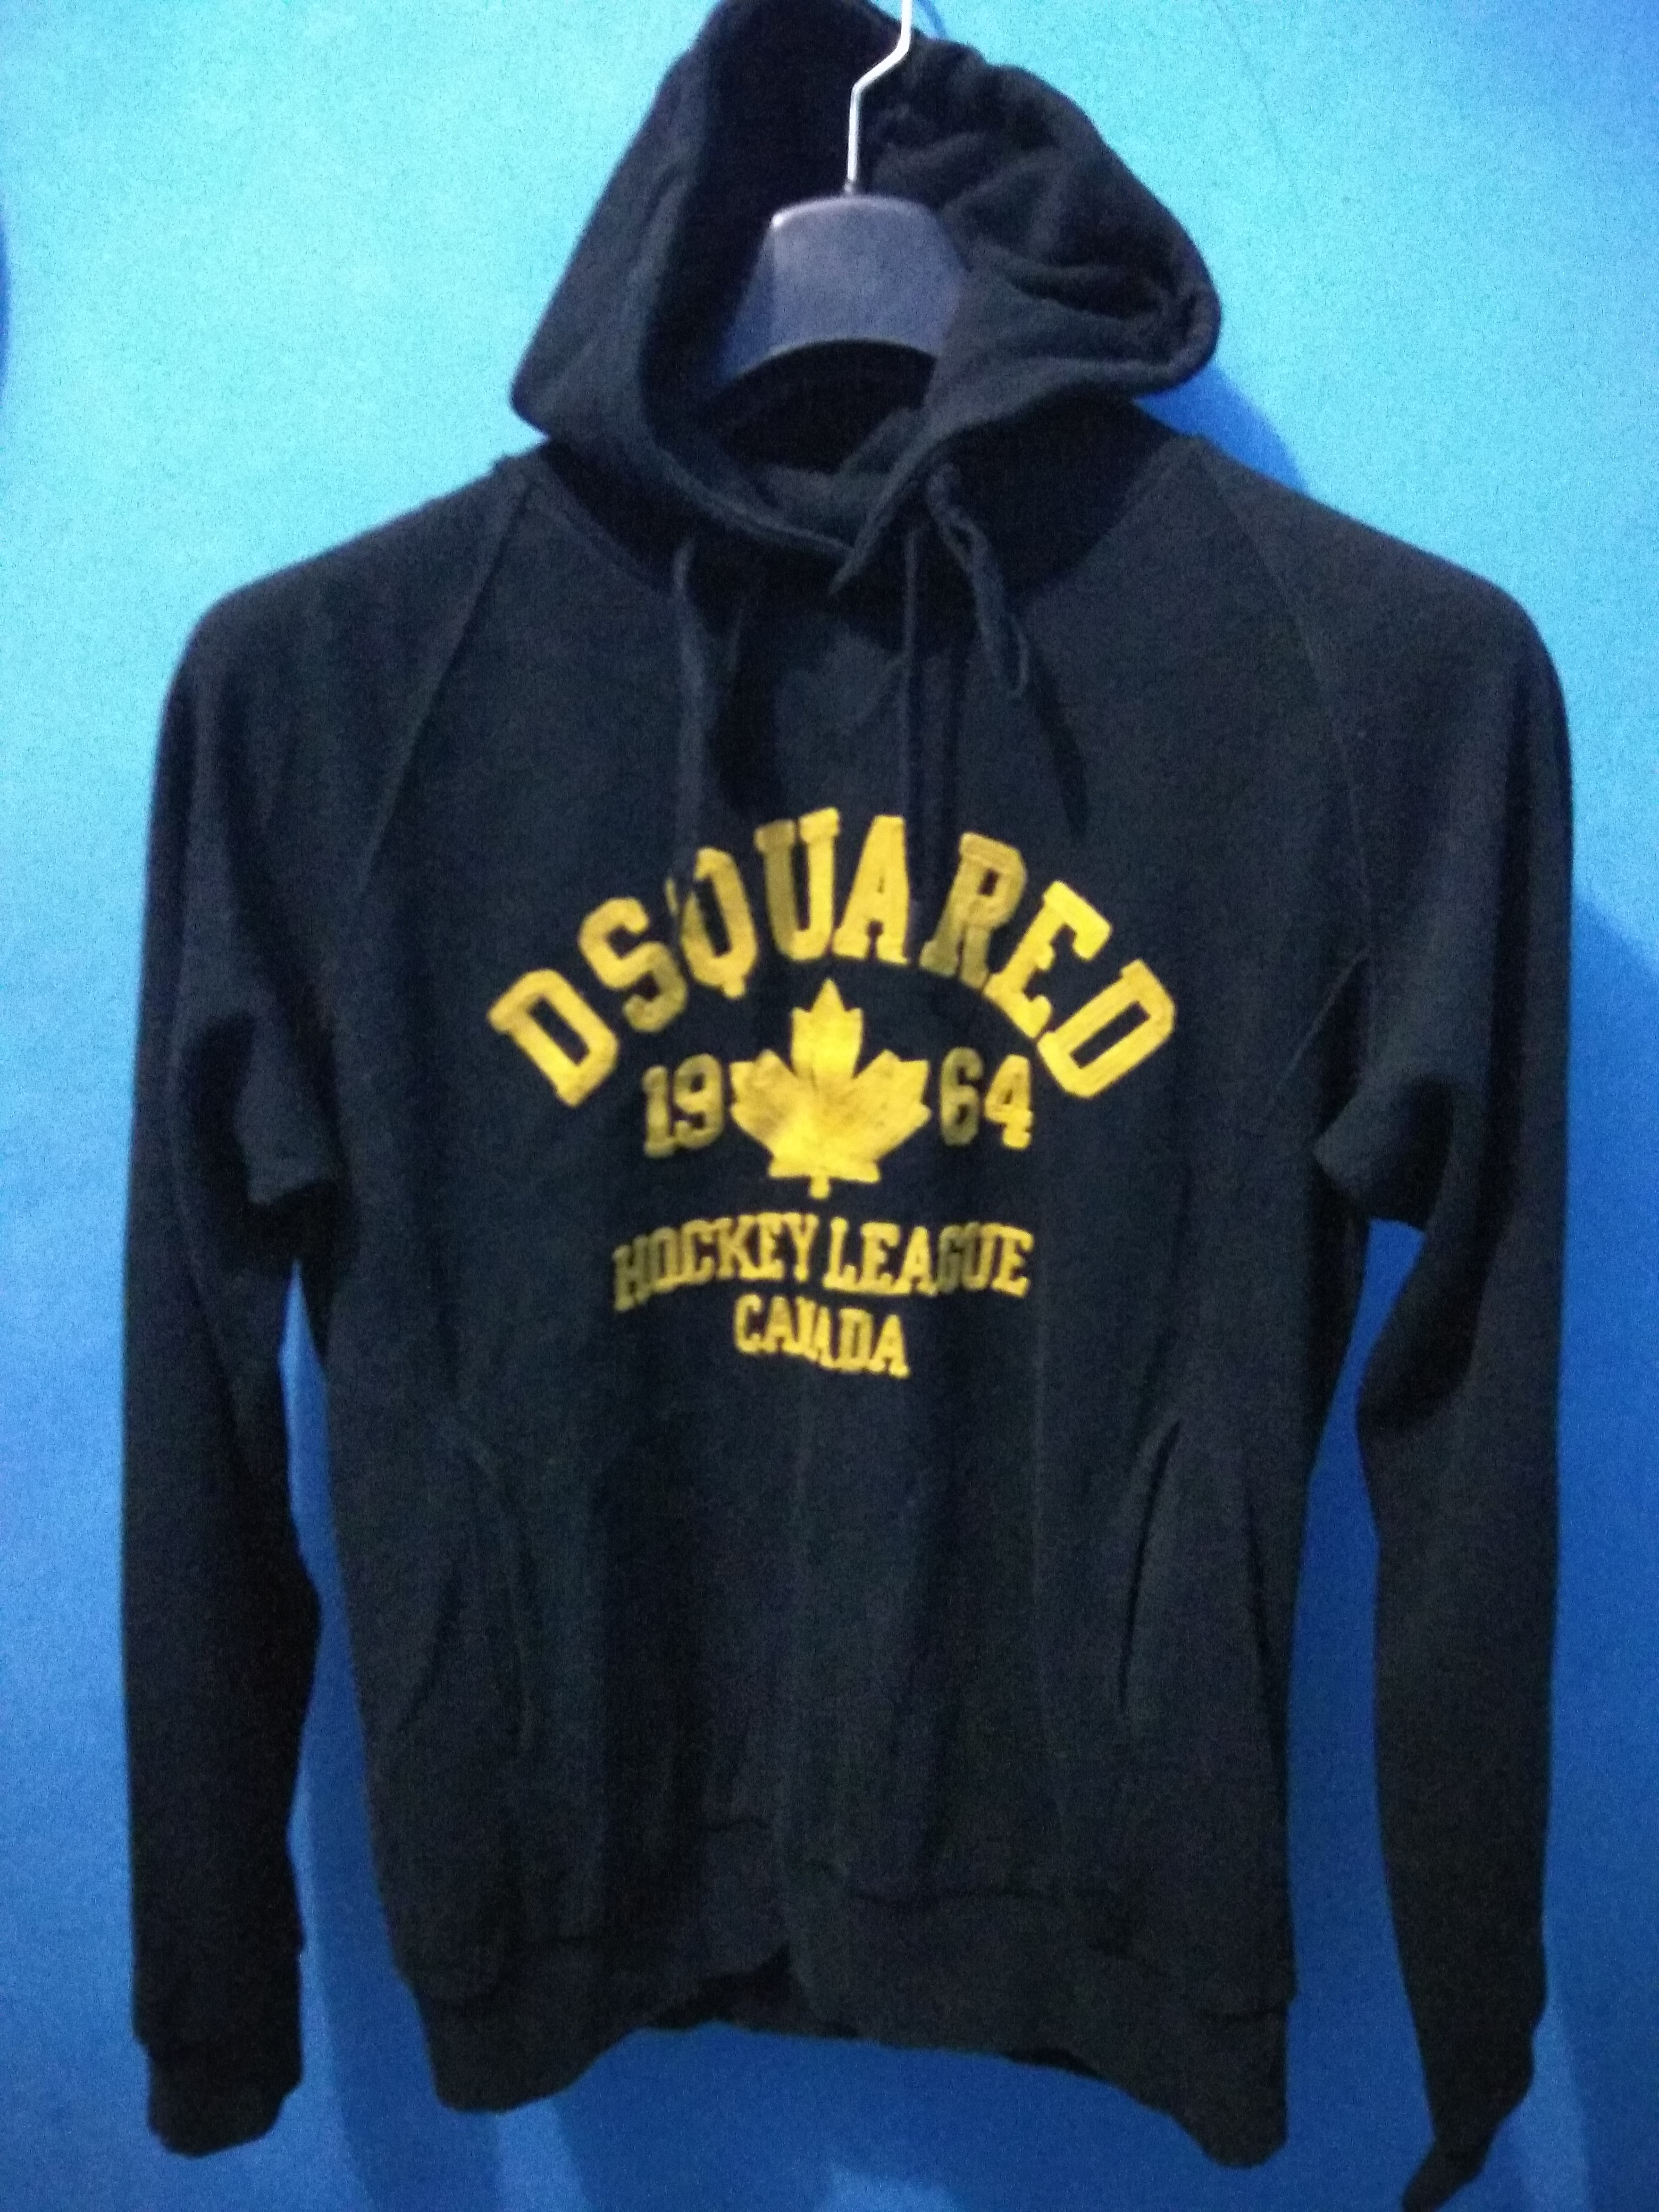 Dsquared2 Dsquared2 Hoddie 1964 Hockey League Canada Grailed